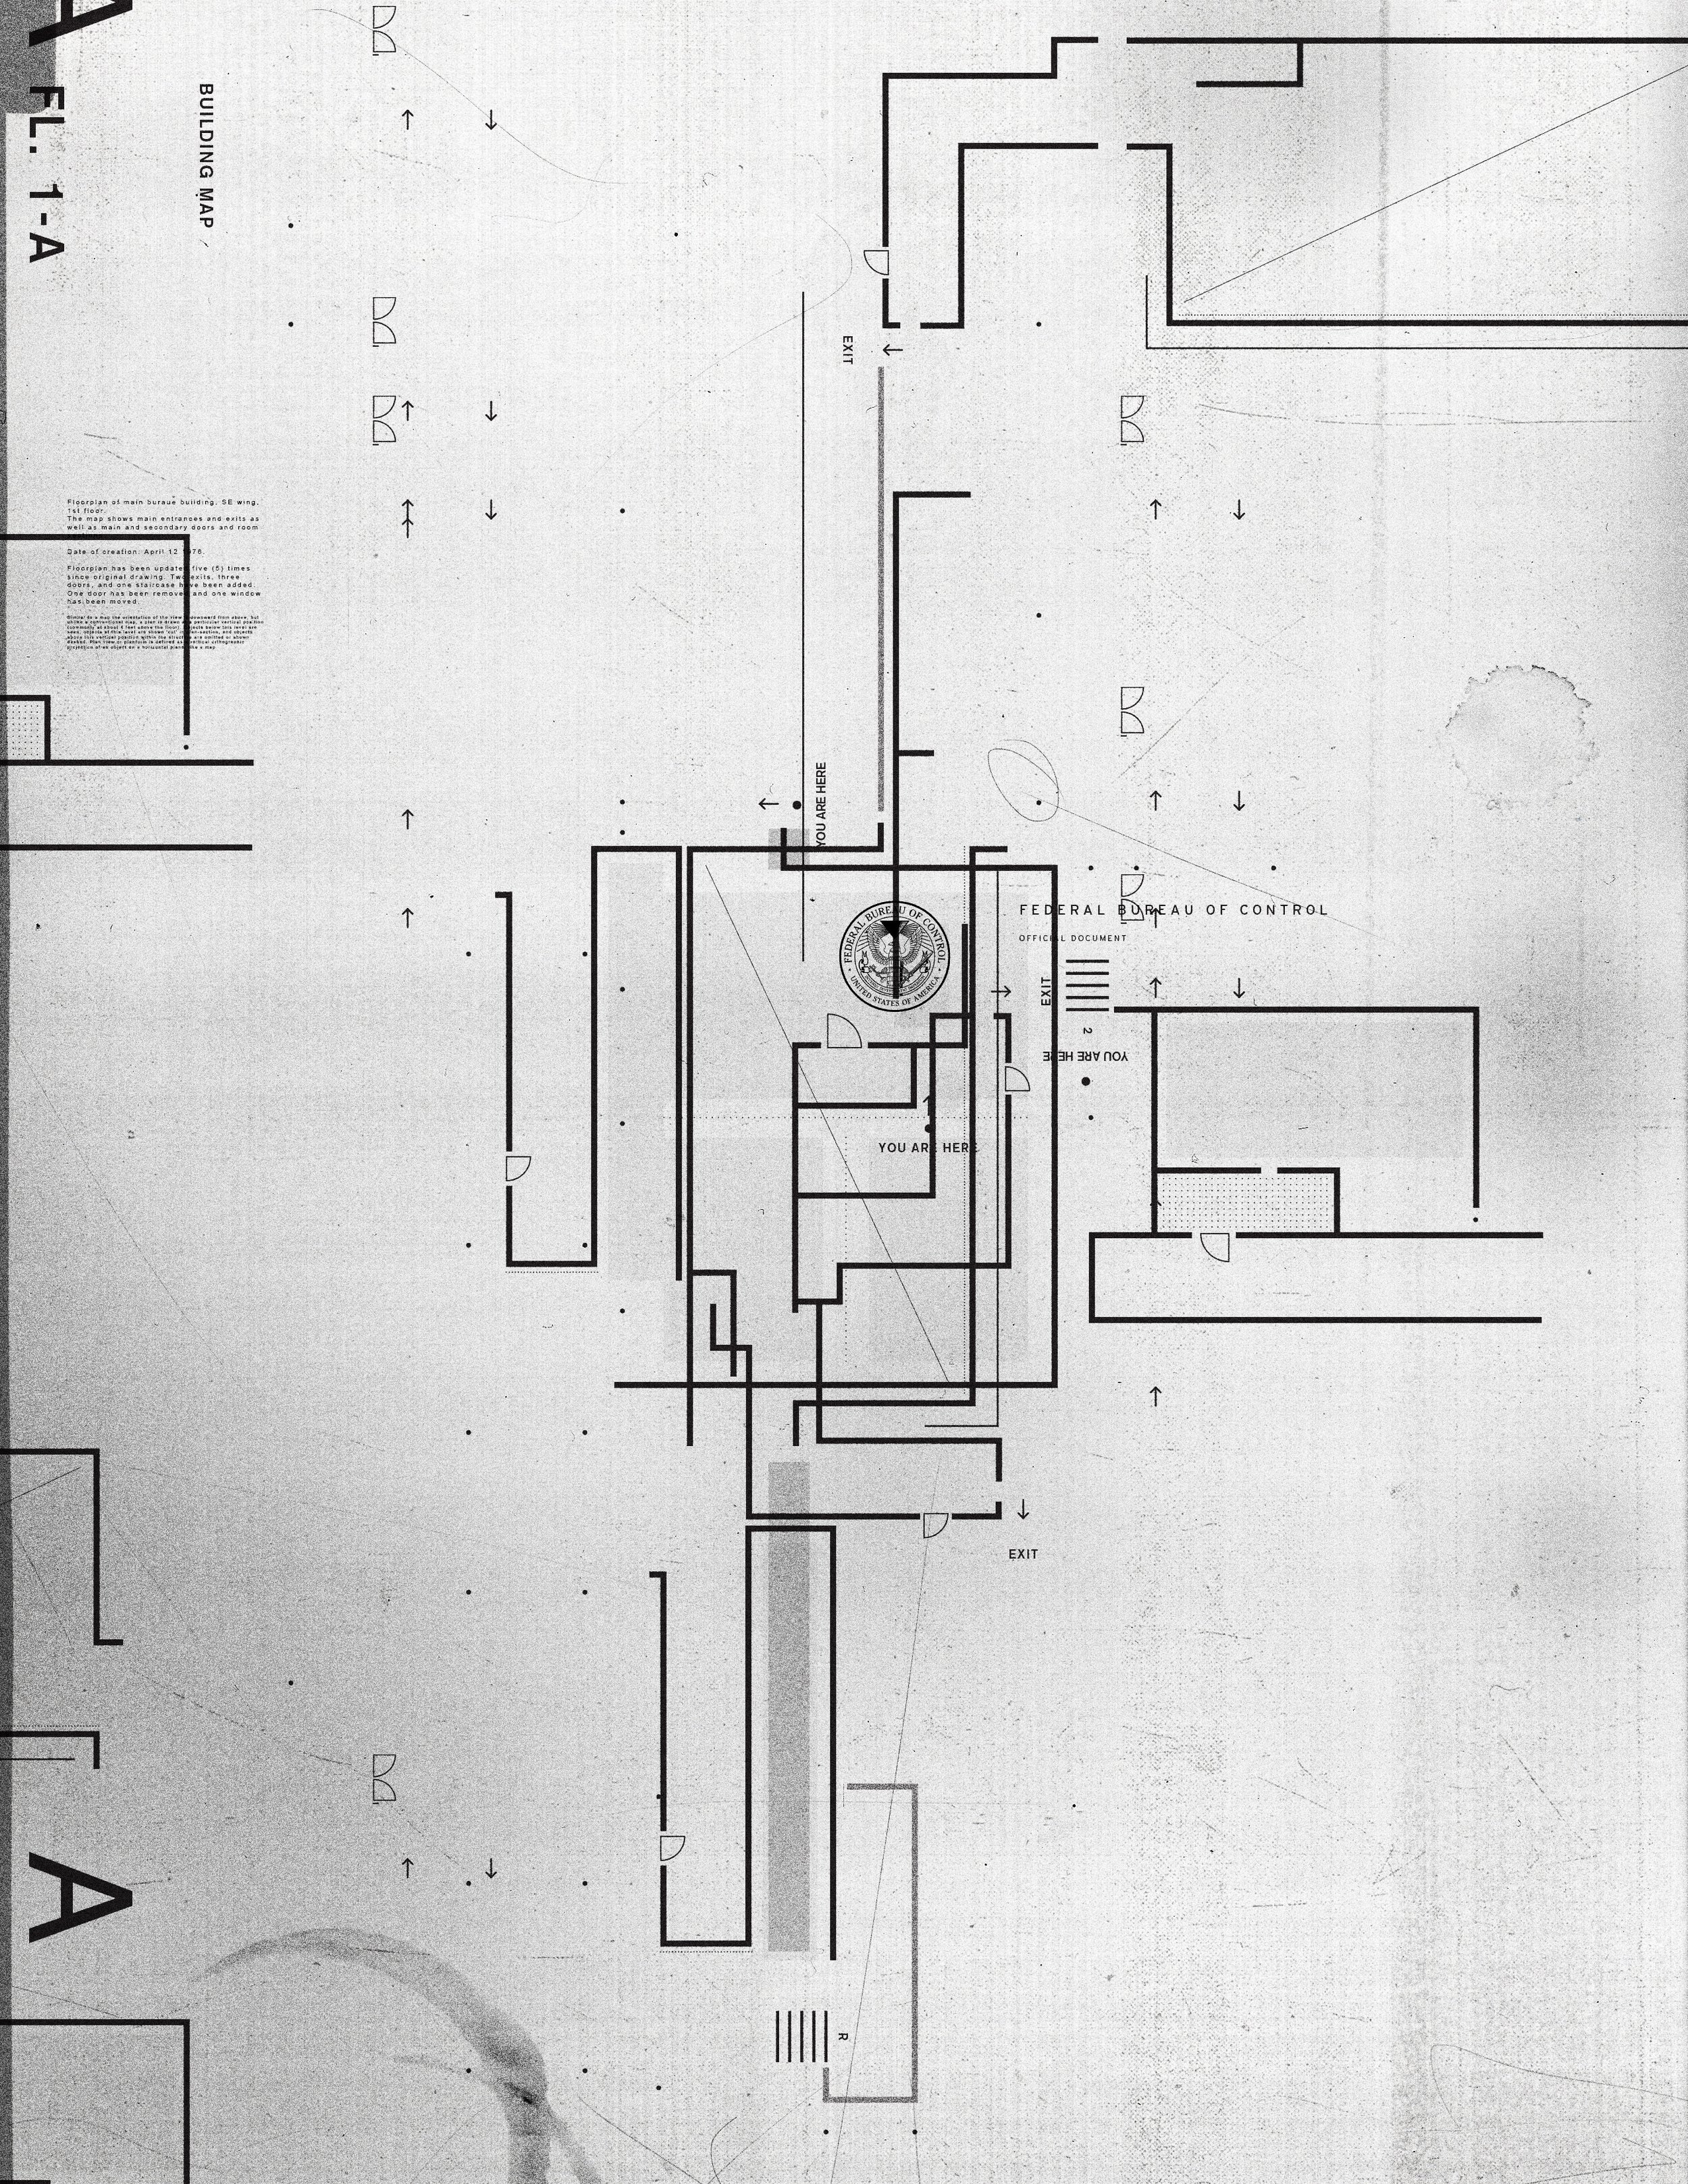 Floorplan_Distorted_02.jpg